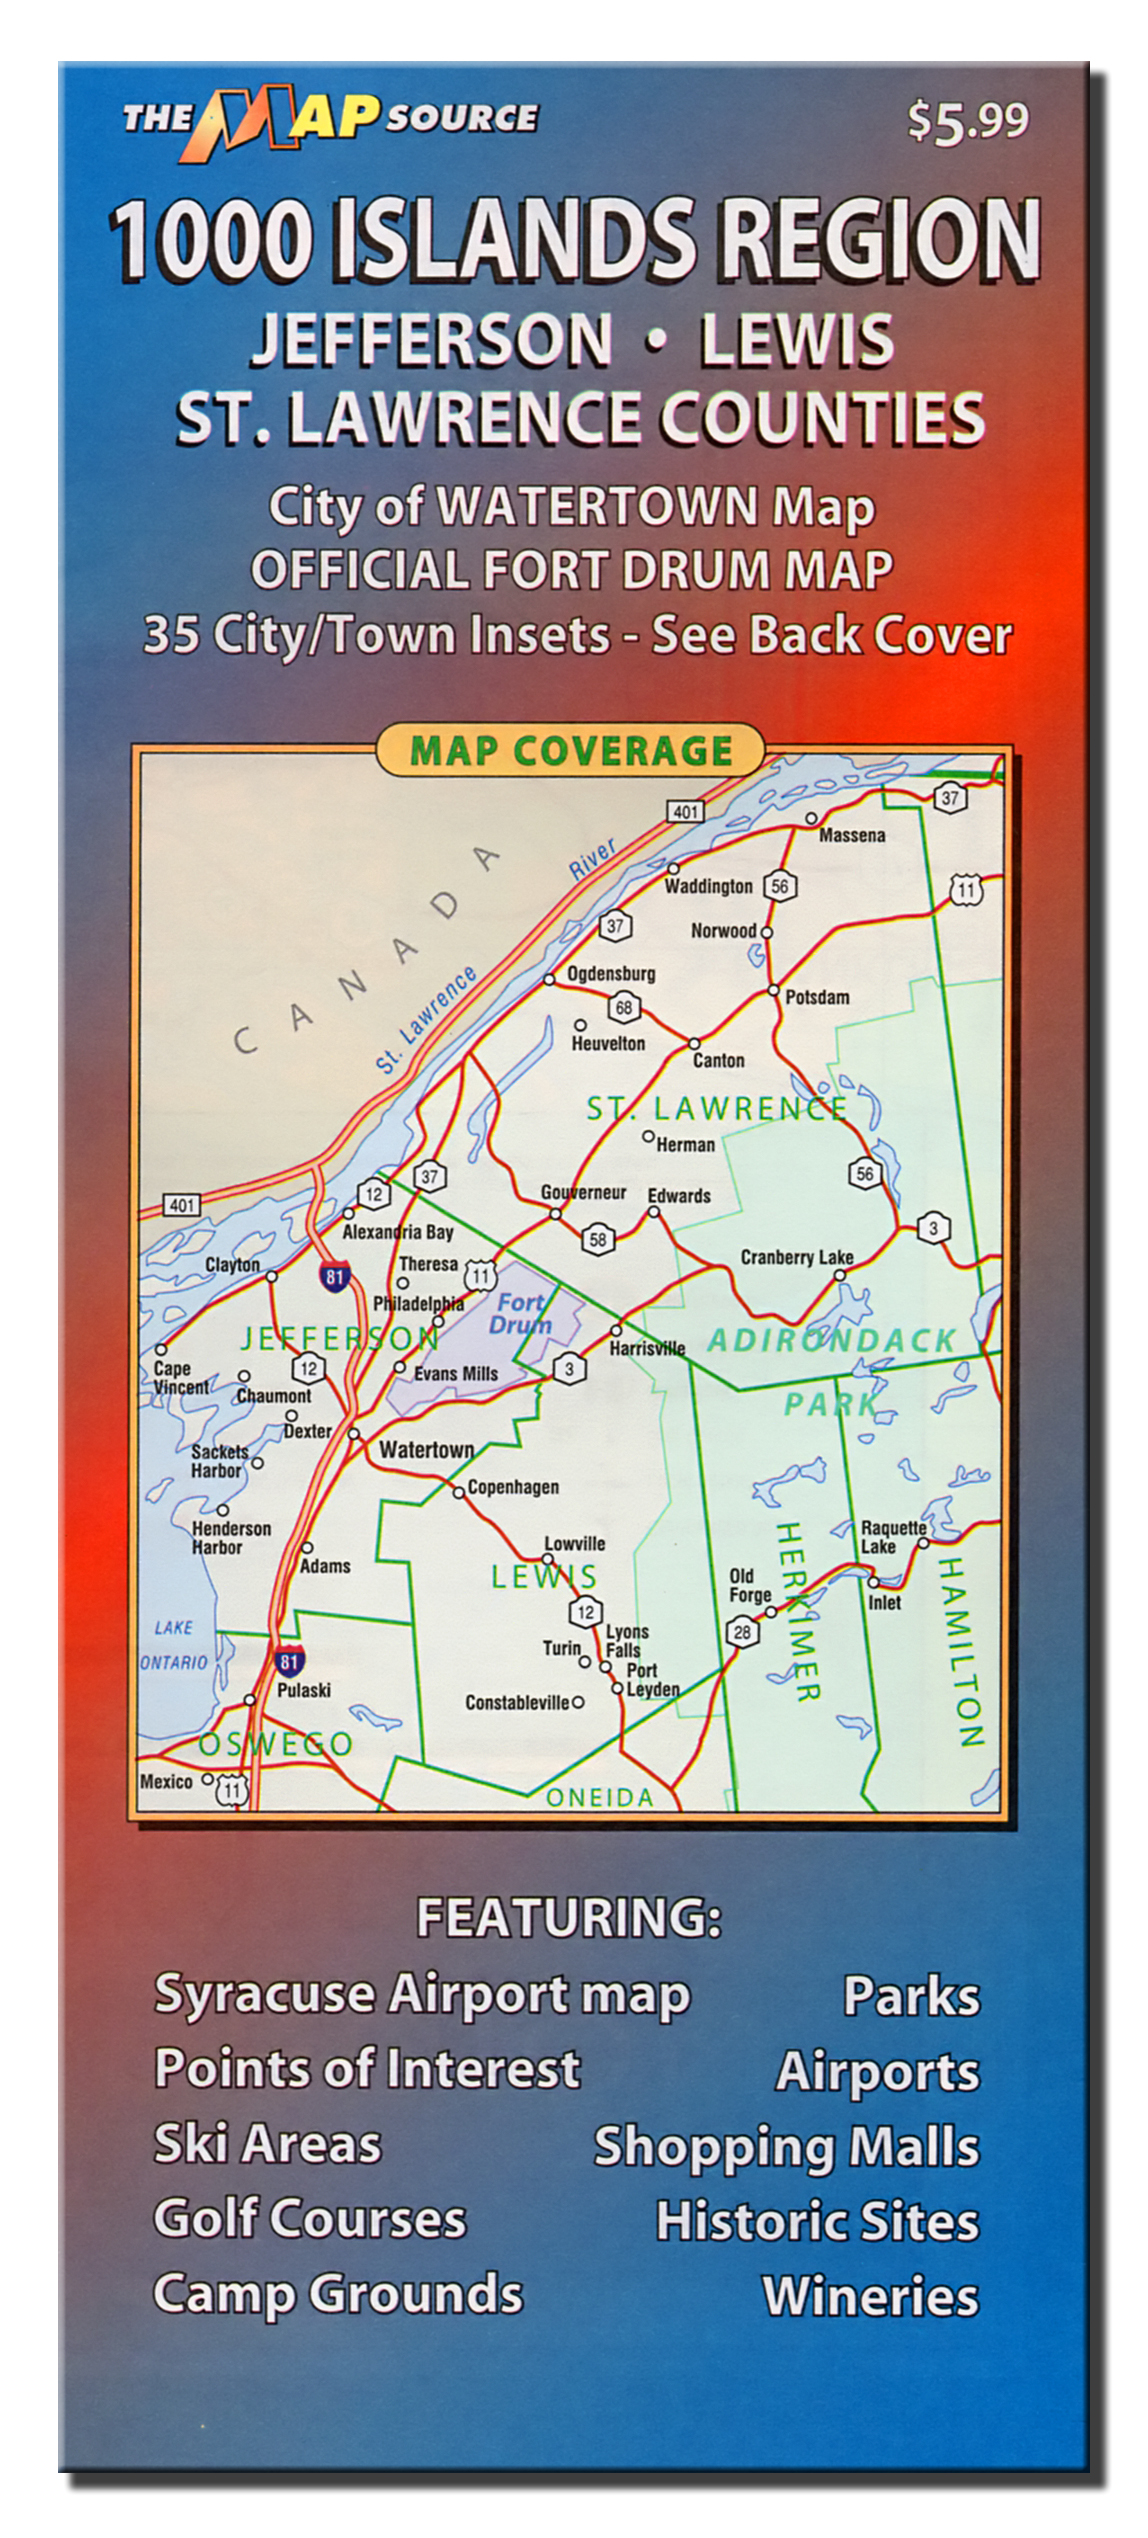 1000 Islands Region of New York State – The Map Source on